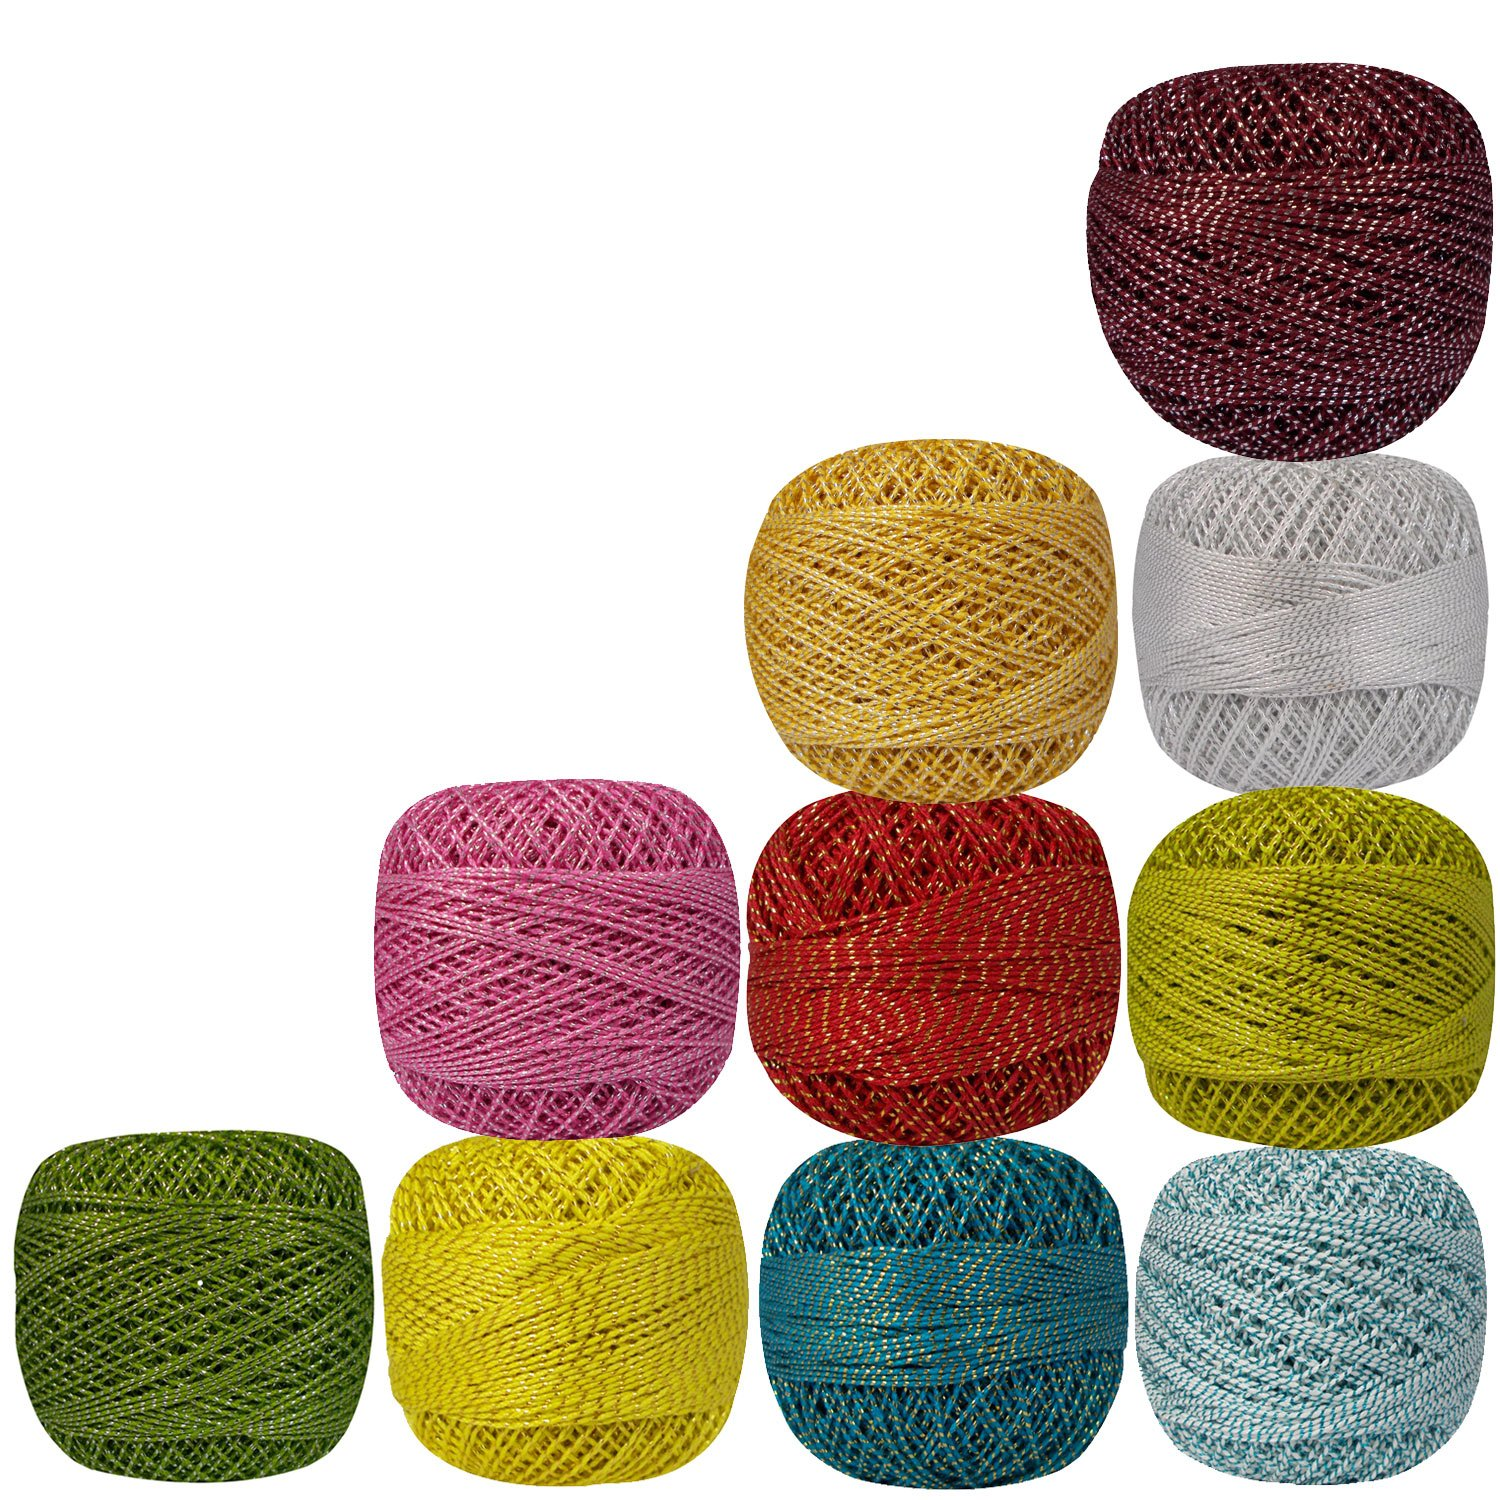 10 Pcs Metallic Multicolor Cotton Crochet Thread Variegated Knitting Yarn Tatting Doilies Assorted Colors Skeins Lacey Craft